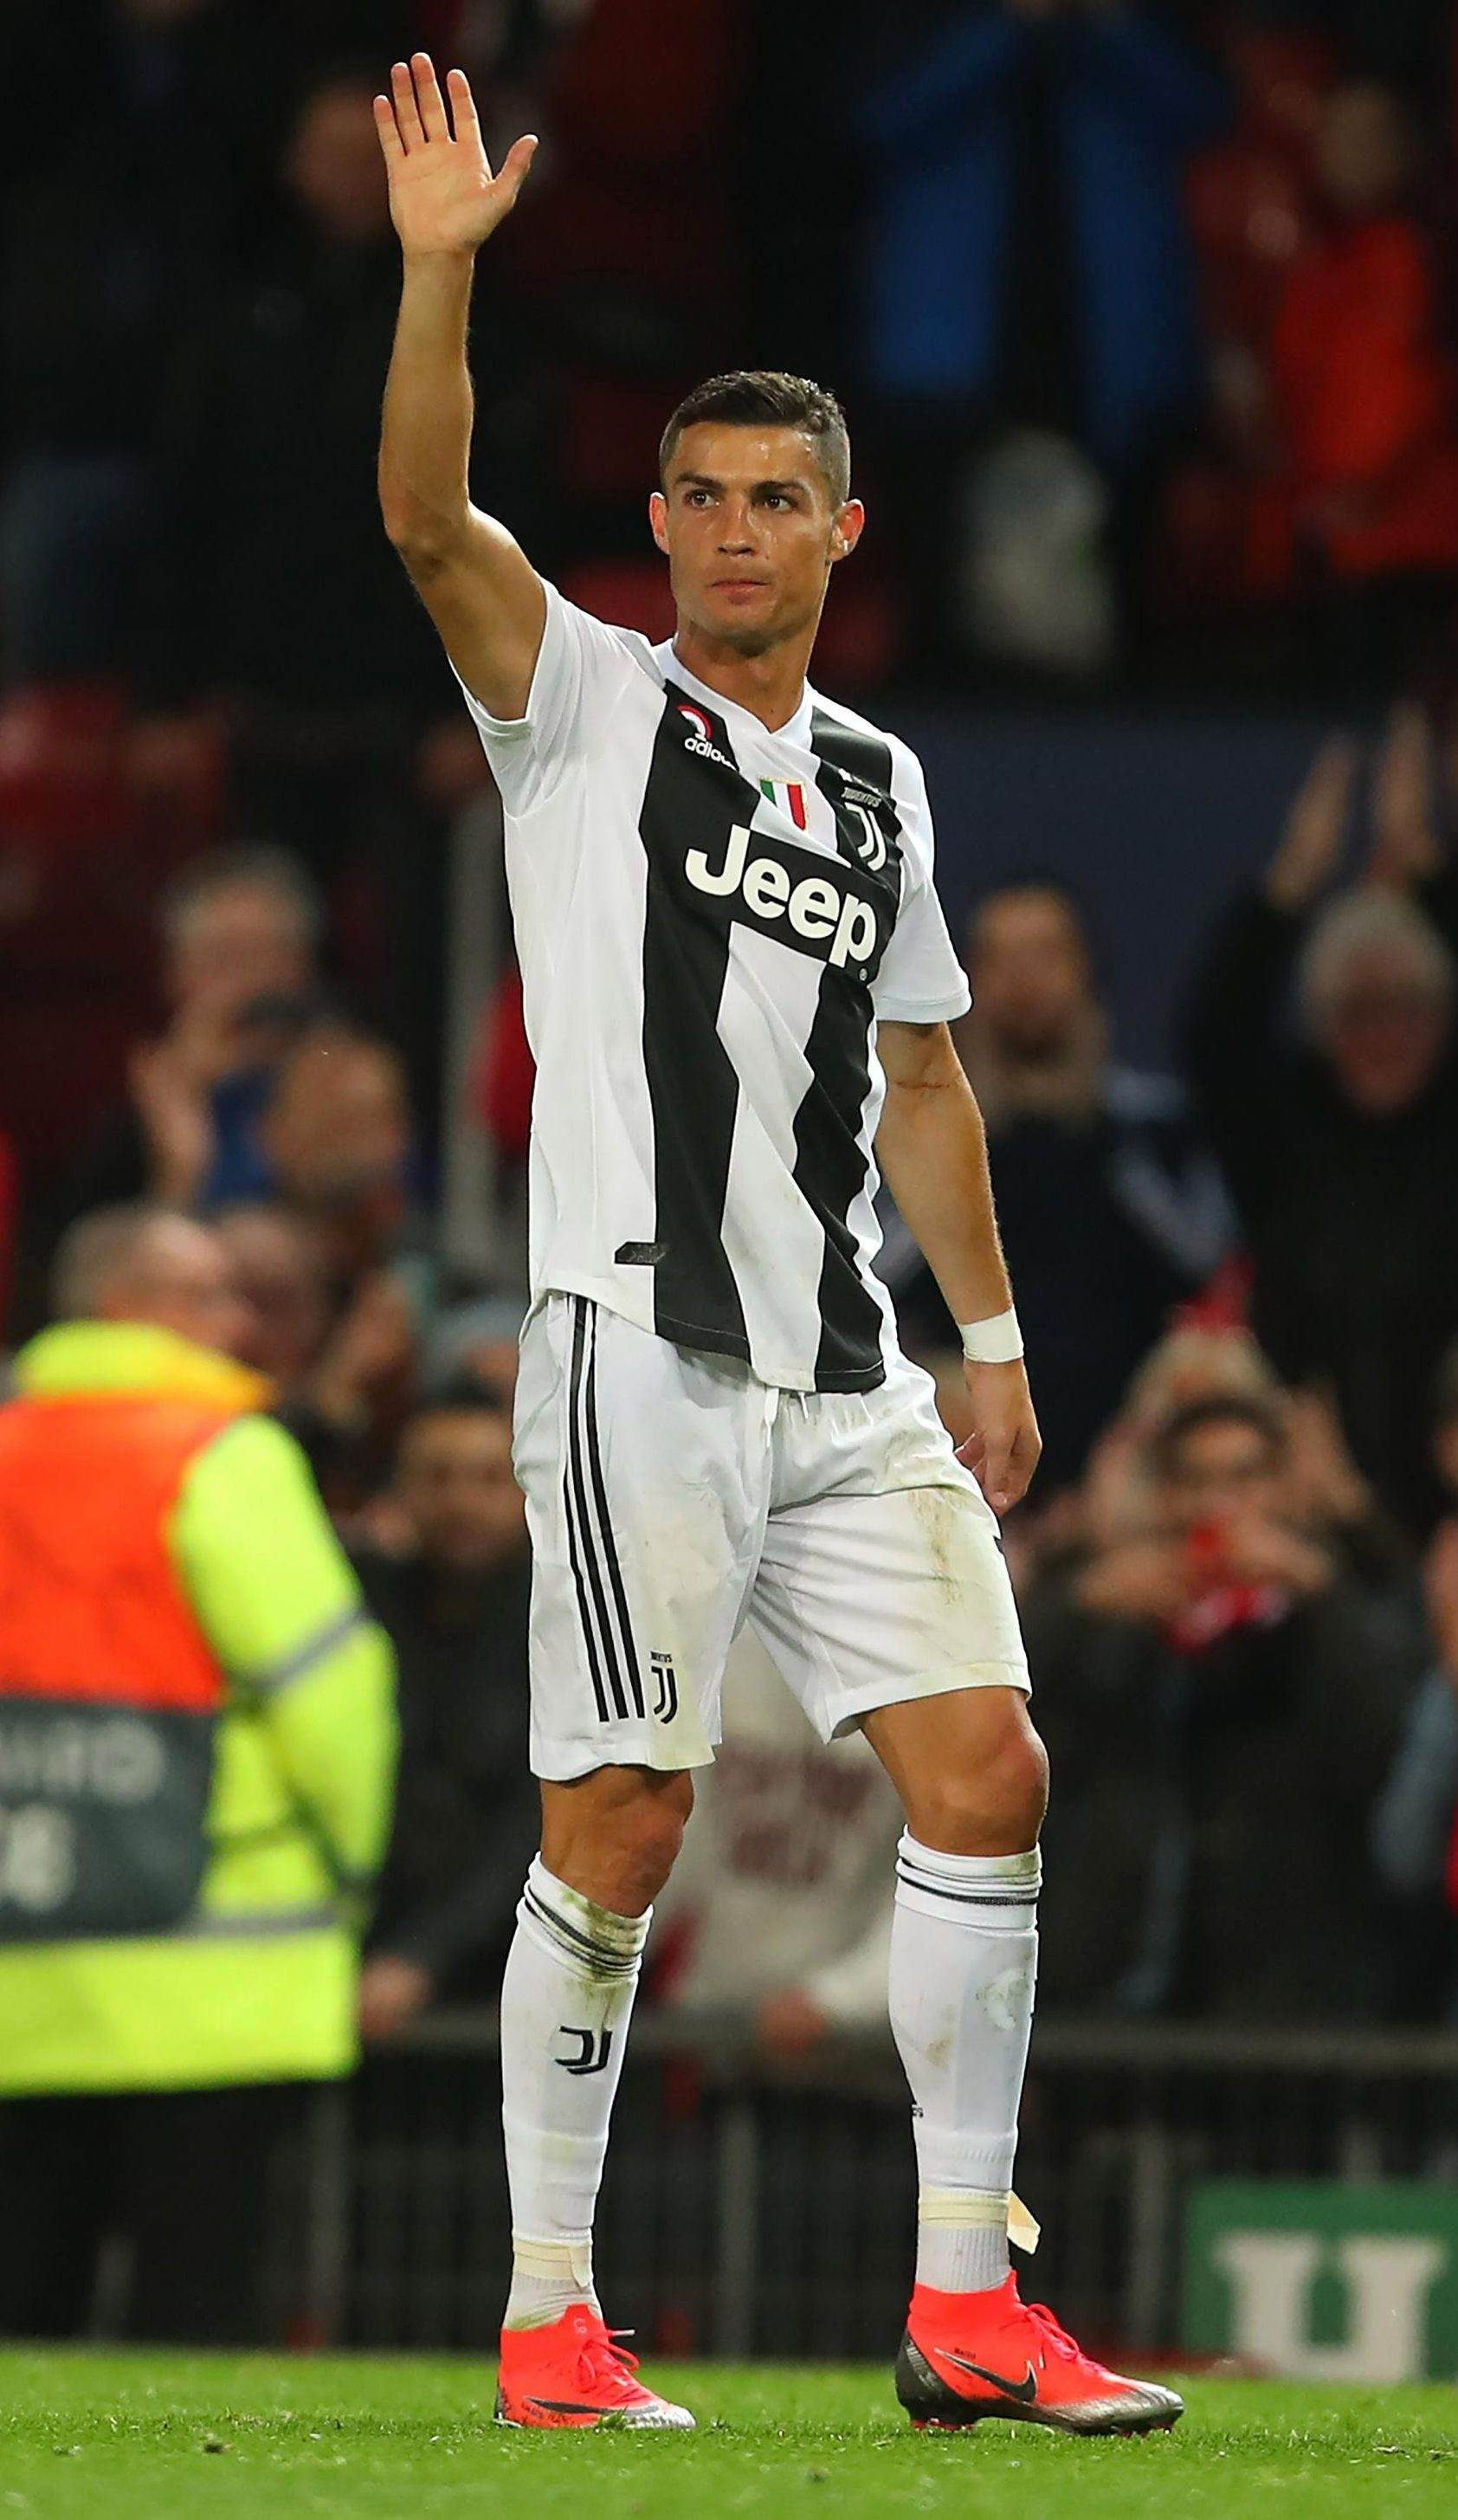 Cristiano Ronaldo received warm applause from all corners of Old Trafford